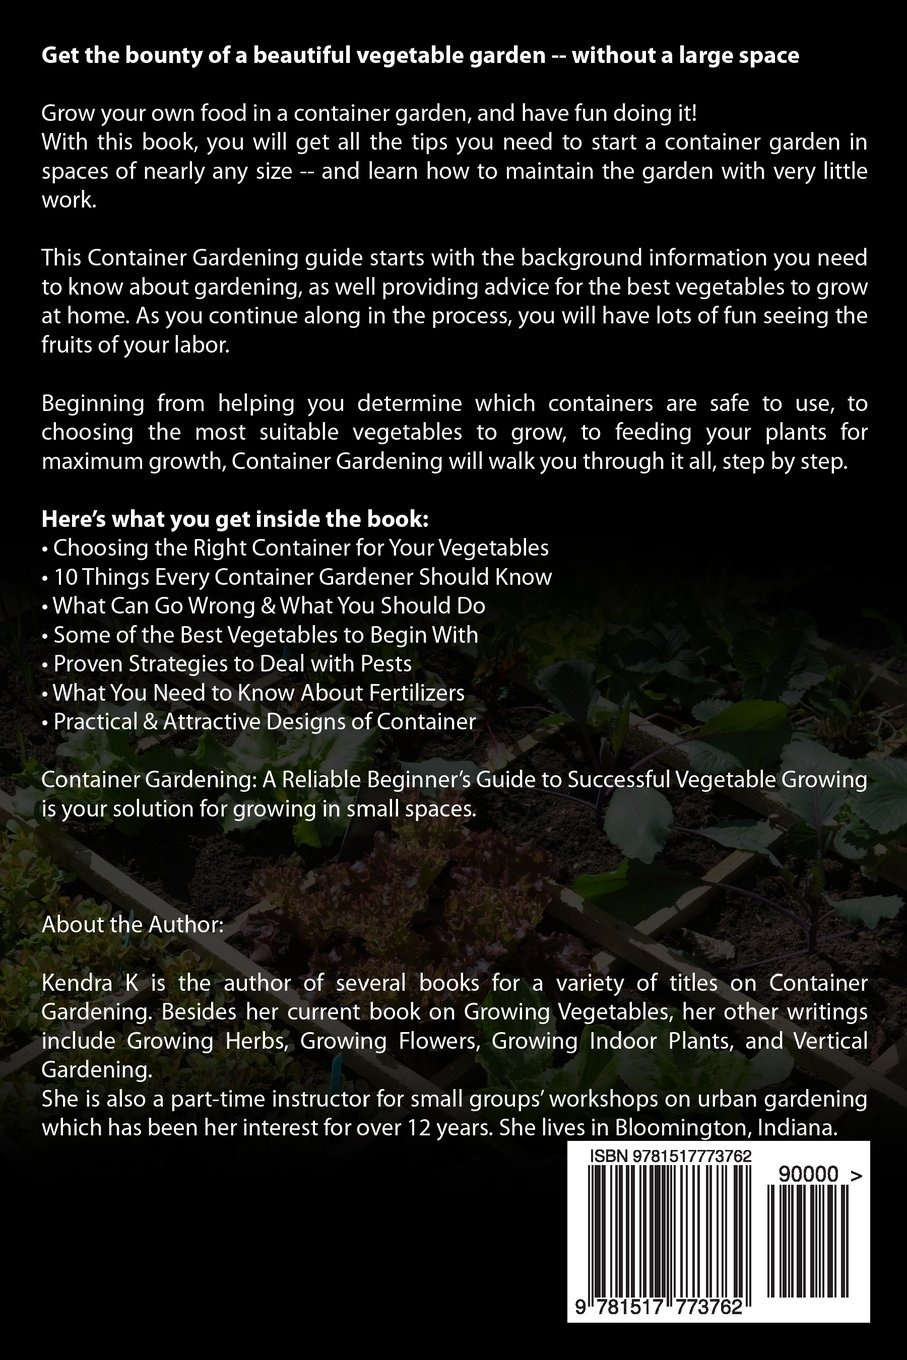 Container Gardening A Reliable Beginner s Guide to Successful Ve able Growing Urban Gardening Simplified Volume 1 Kendra K